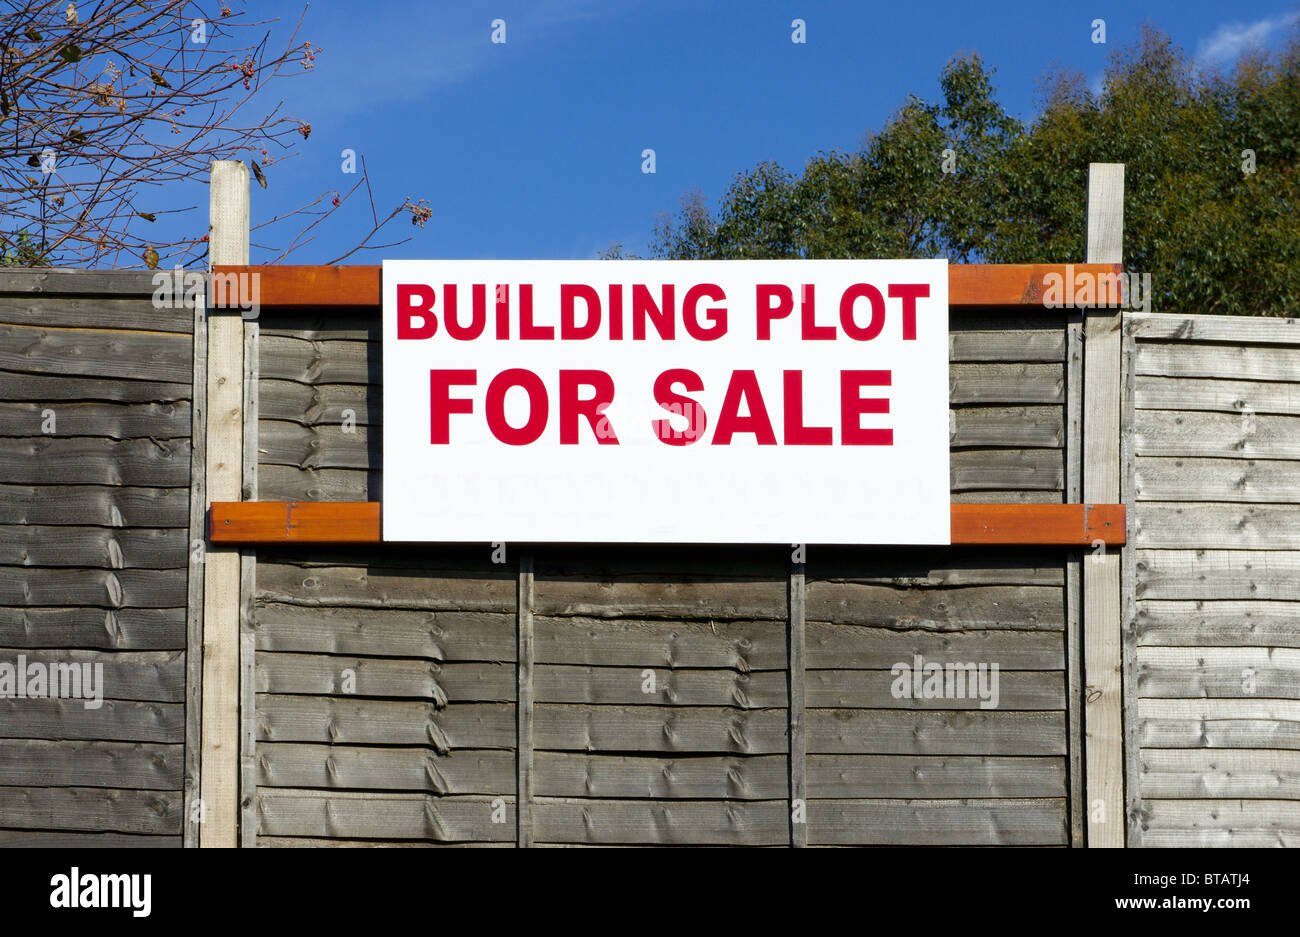 Building plot for sale sign - Stock Image